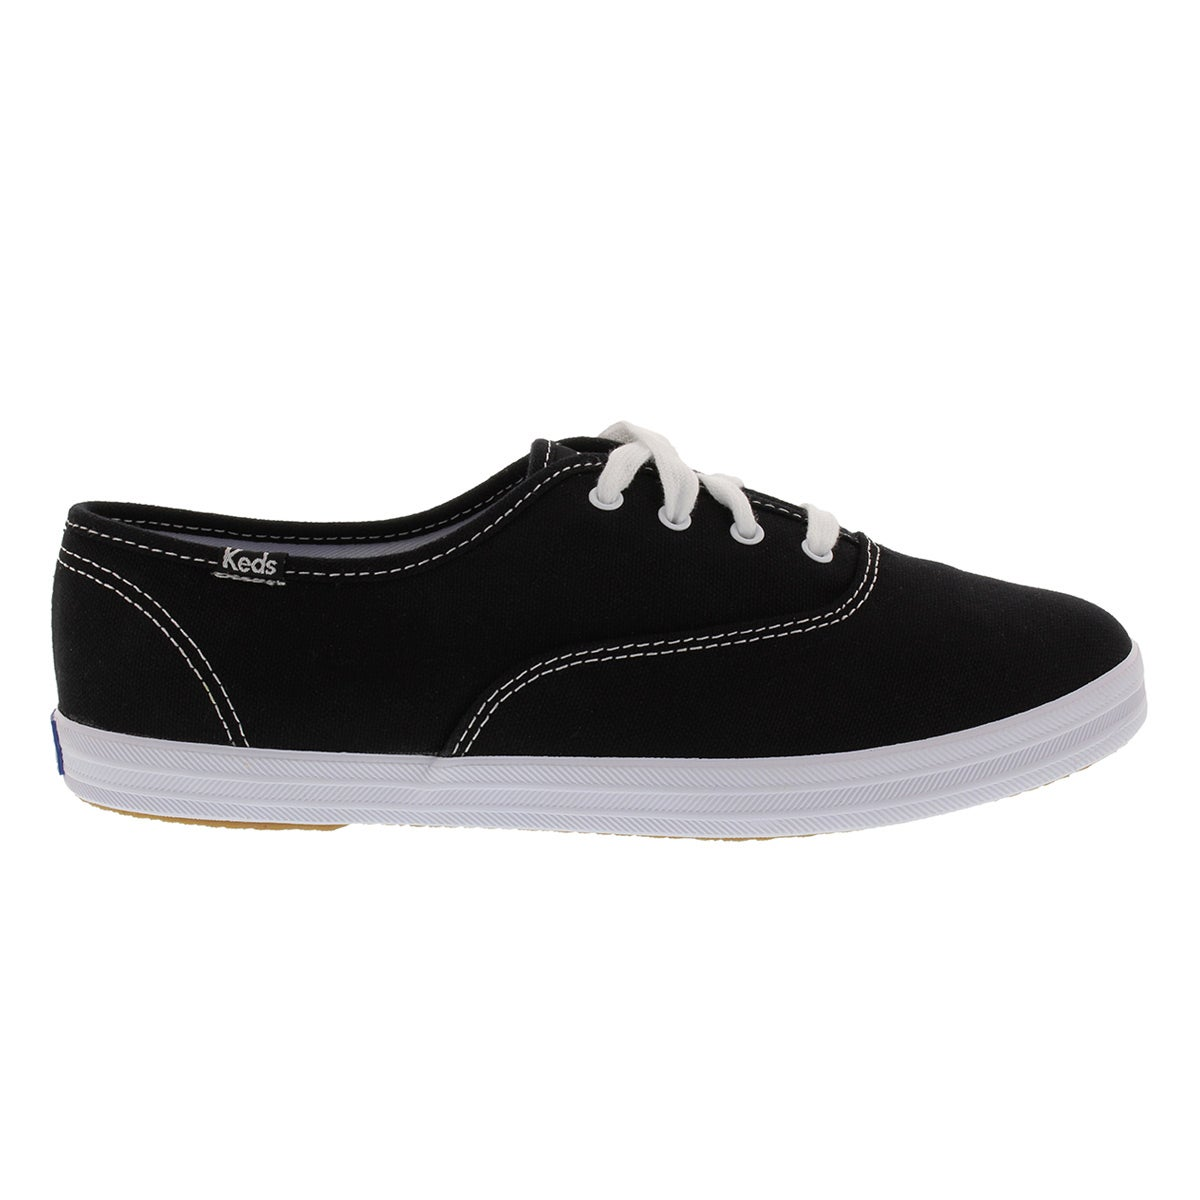 Lds Champion blk canvas sneaker - X Wide